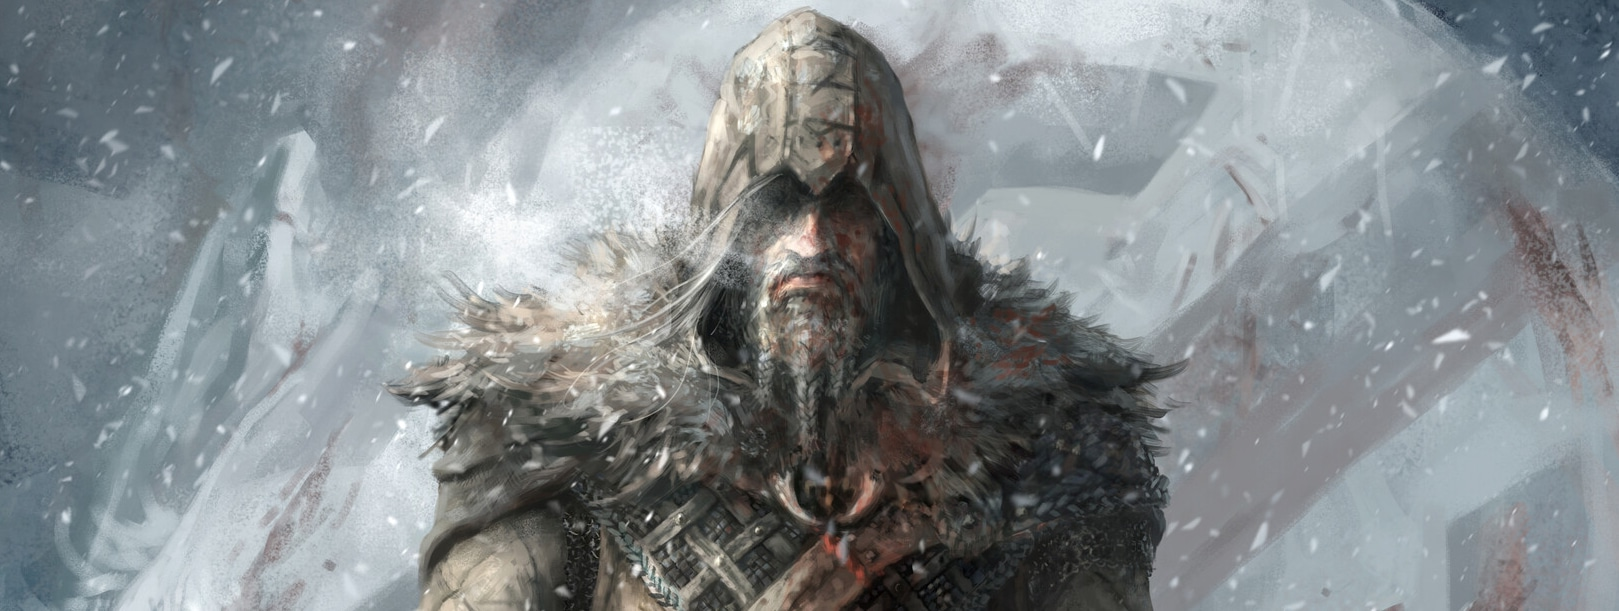 Next Assassin's Creed to be set in the Viking era